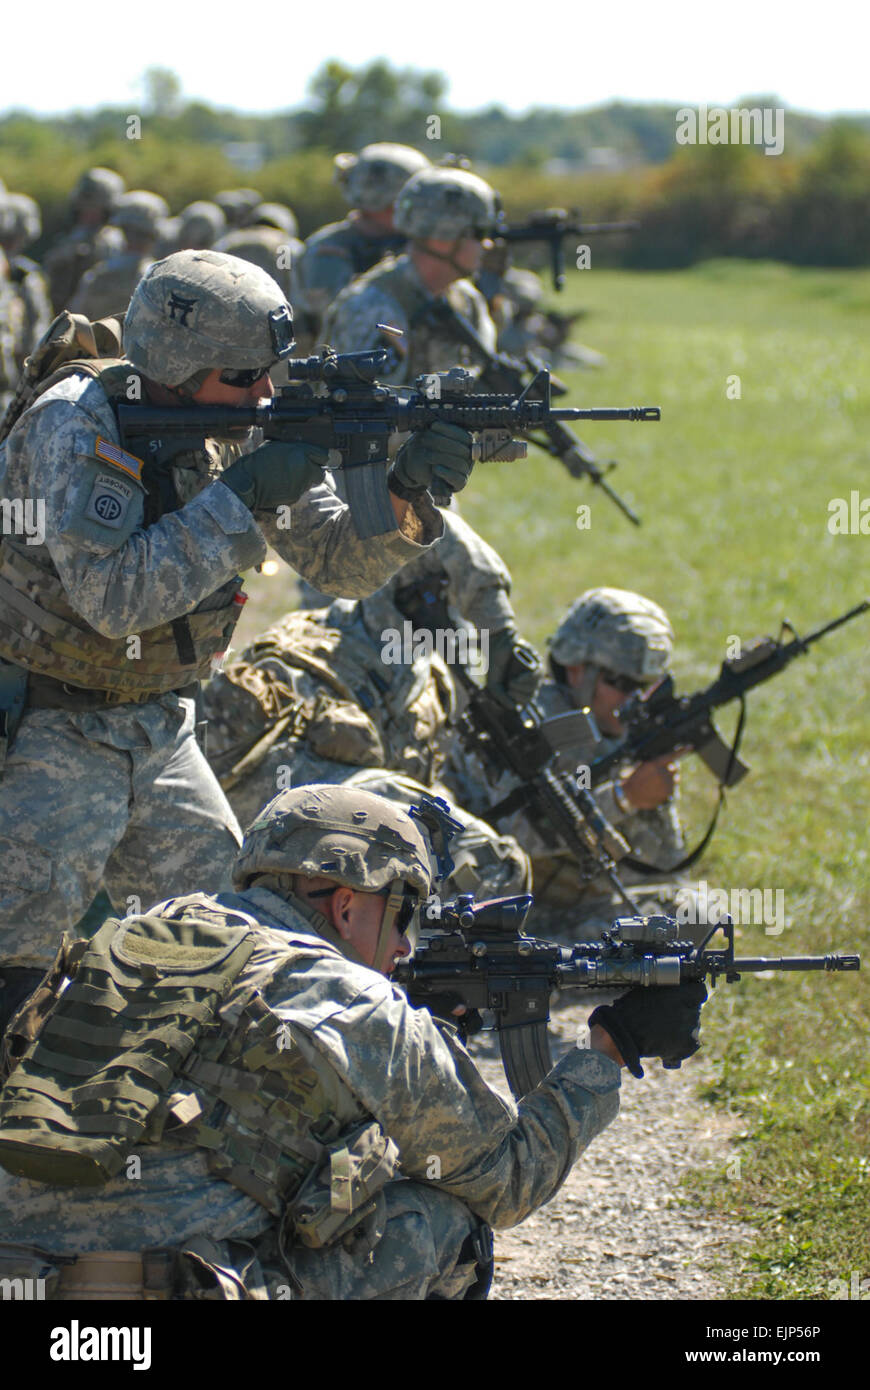 Noncommissioned officers from 1st Battalion, 187th Infantry Regiment, 3rd Brigade Combat Team, 101st Airborne Division - Stock Image